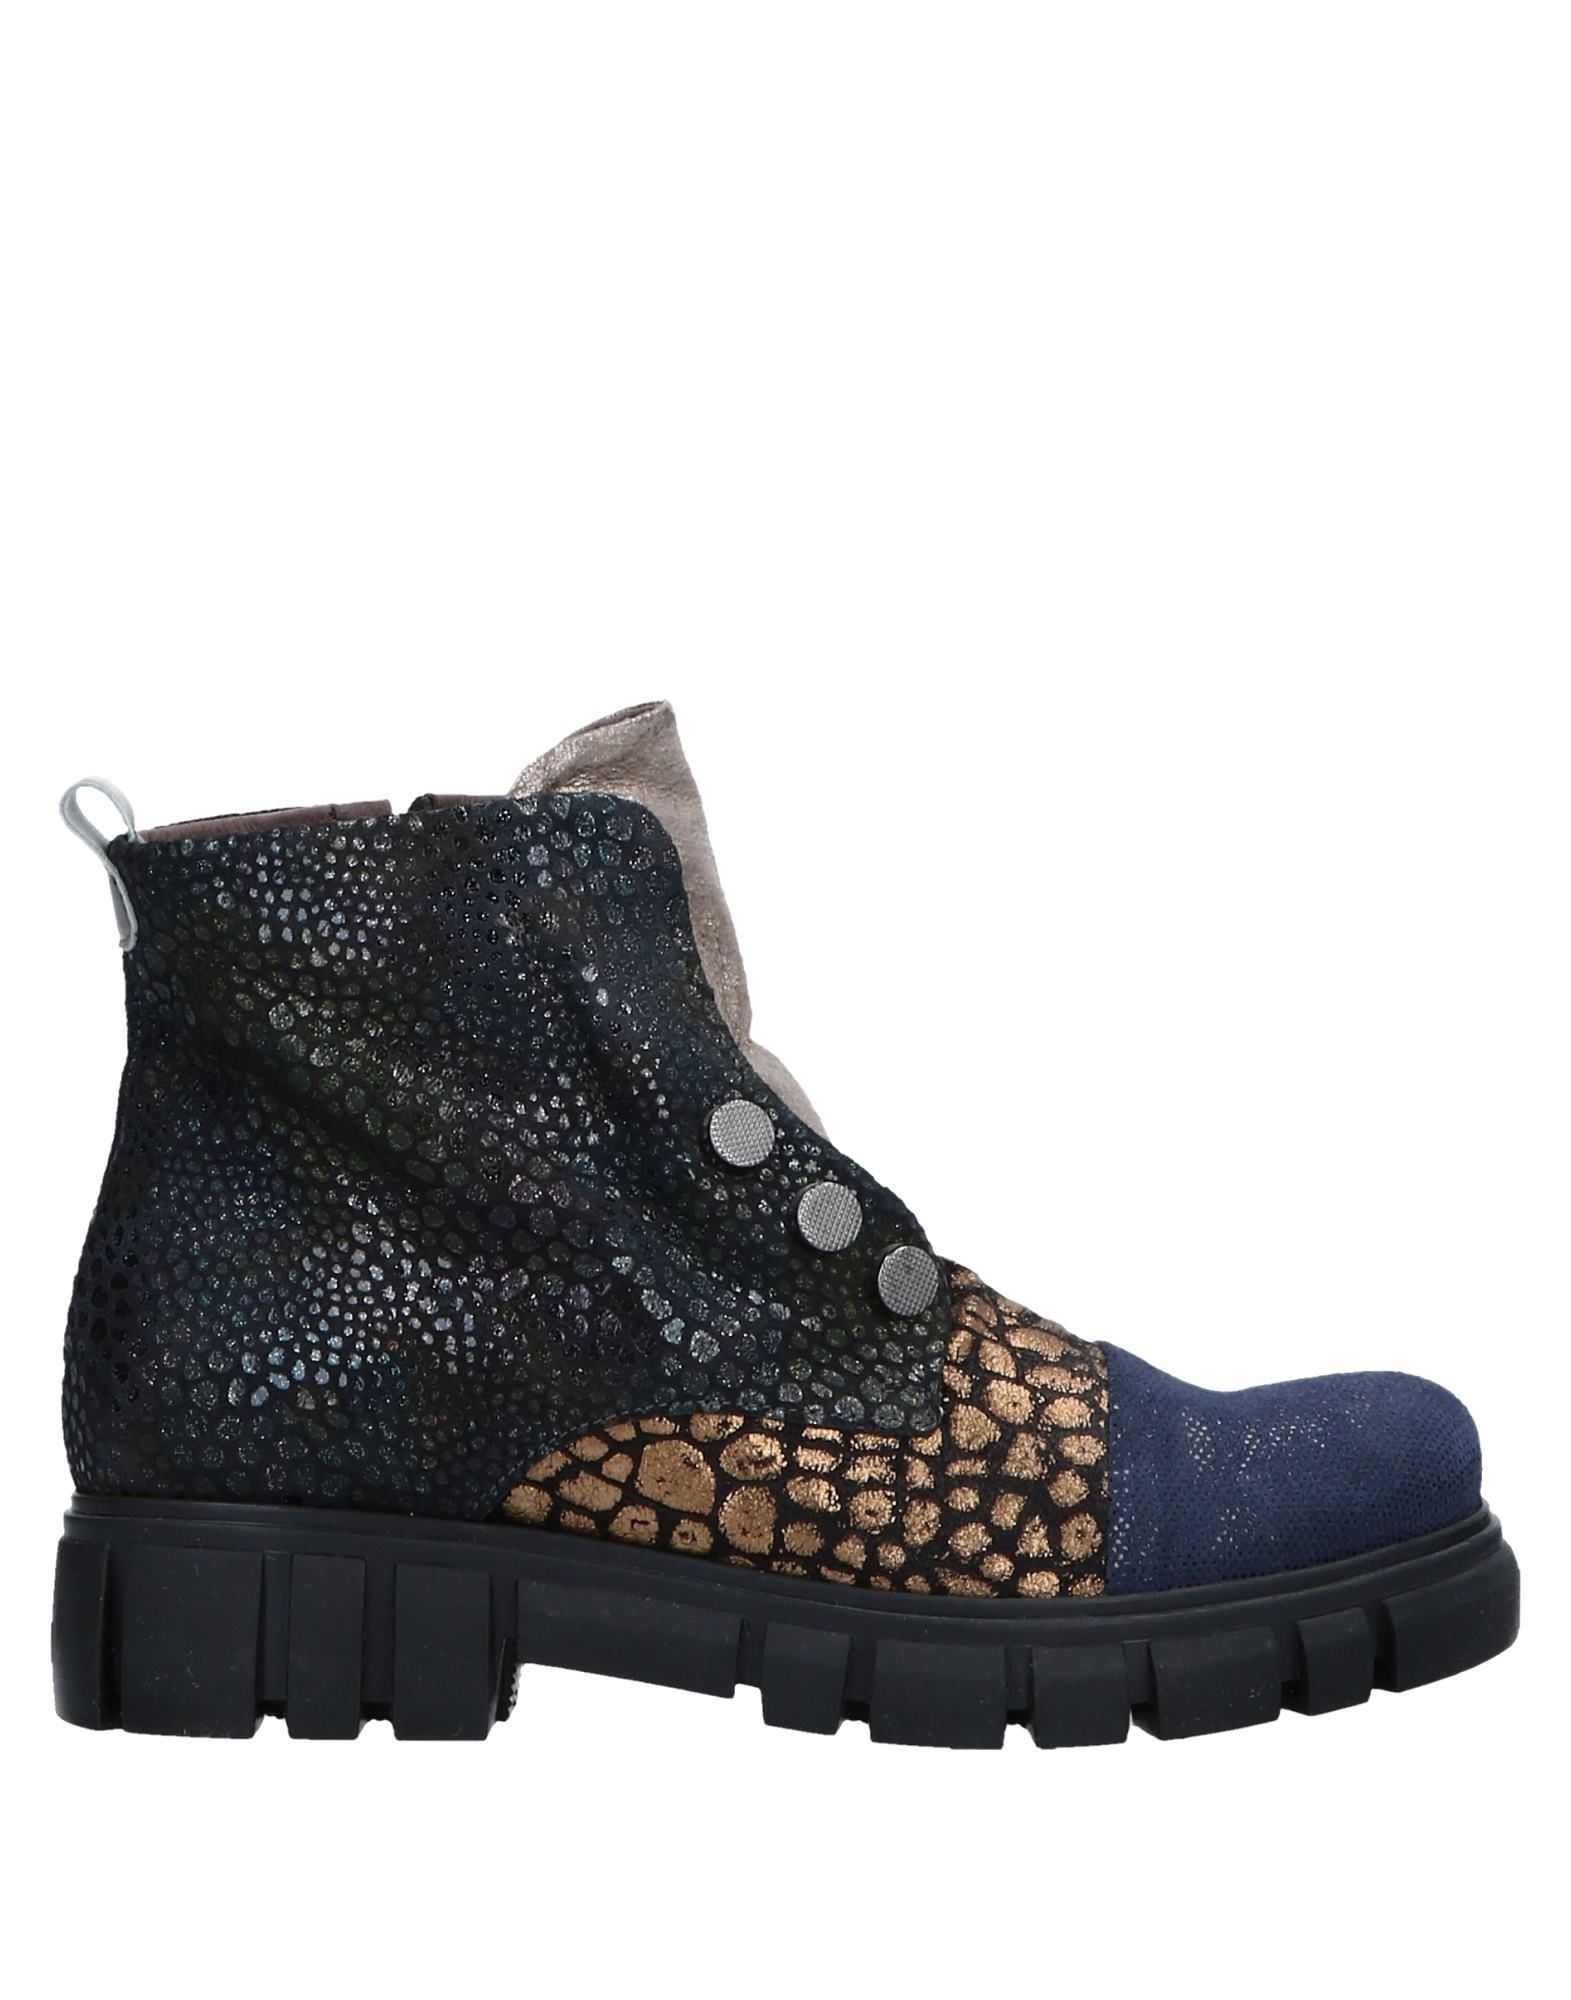 Ebarrito Ankle Boot Boots - Women Ebarrito Ankle Boots Boot online on  Australia - 11518966IR 6a25f8